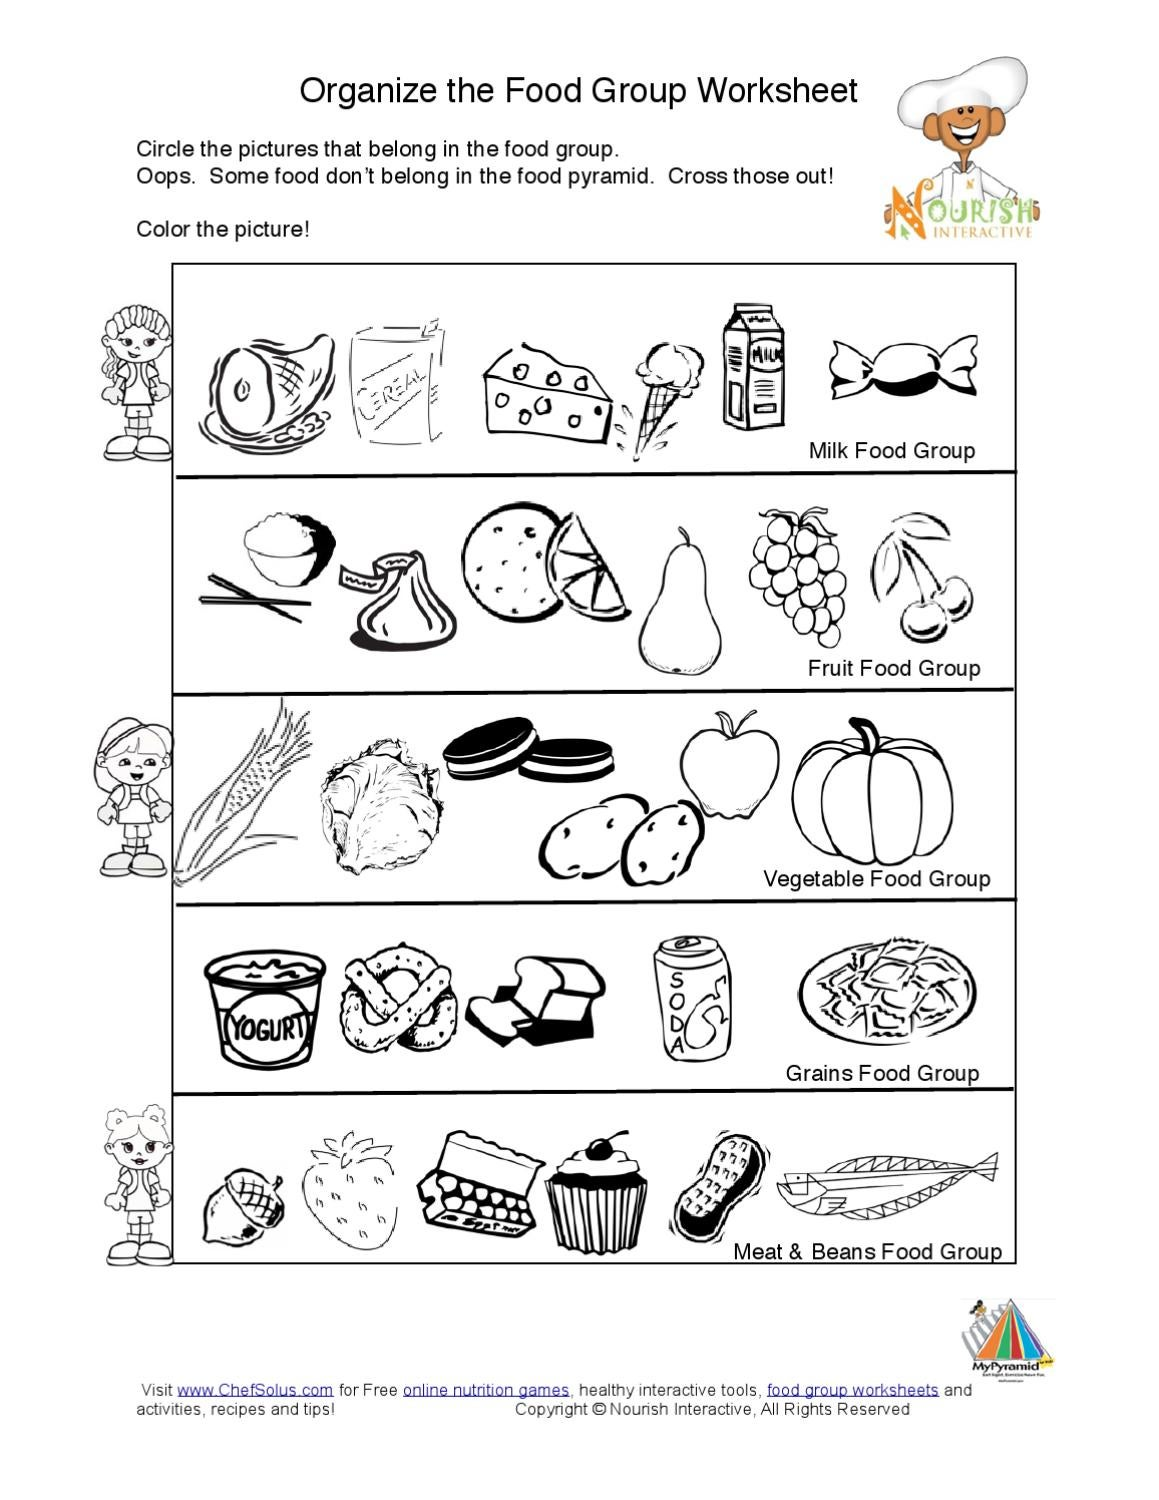 Worksheets Food Groups Worksheets kids food pyramid groups learning nutrition worksheet k 5 elementary school by nieves hita issuu